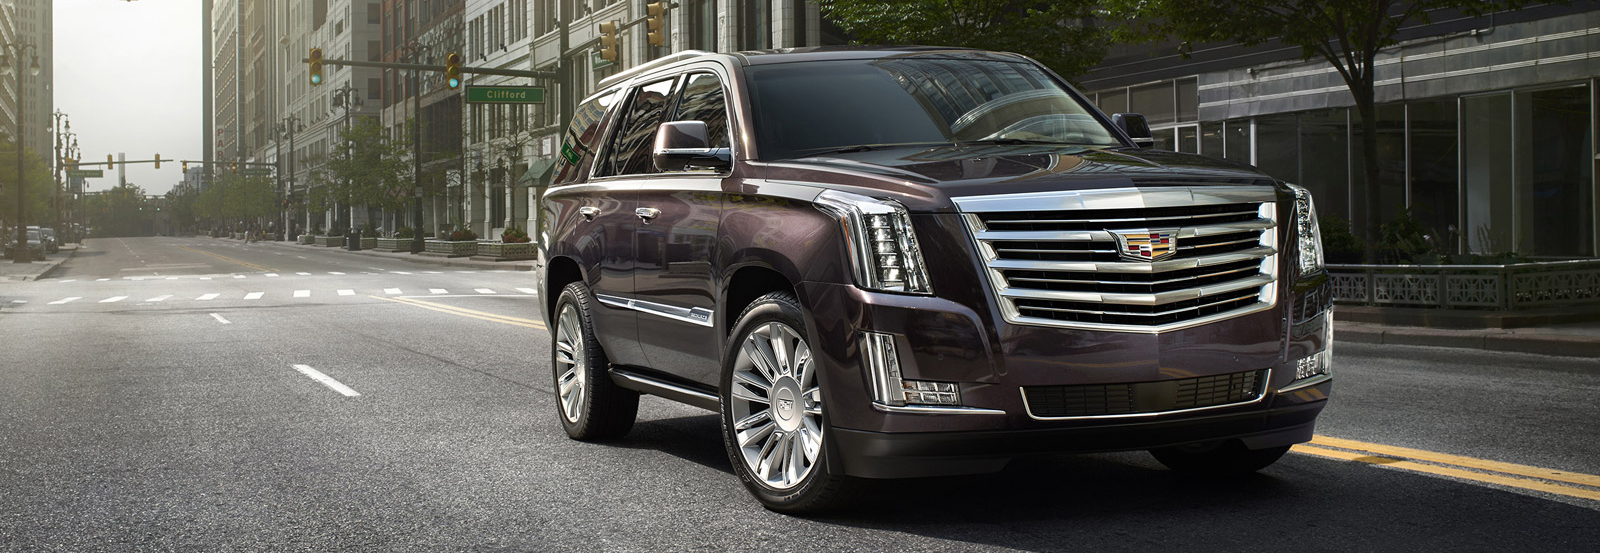 The 2015 Cadillac Escalade Platinum elevates luxury to new heights, with exquisite exterior detailing, additional Cut & Sewn interior materials and enhanced equipment.